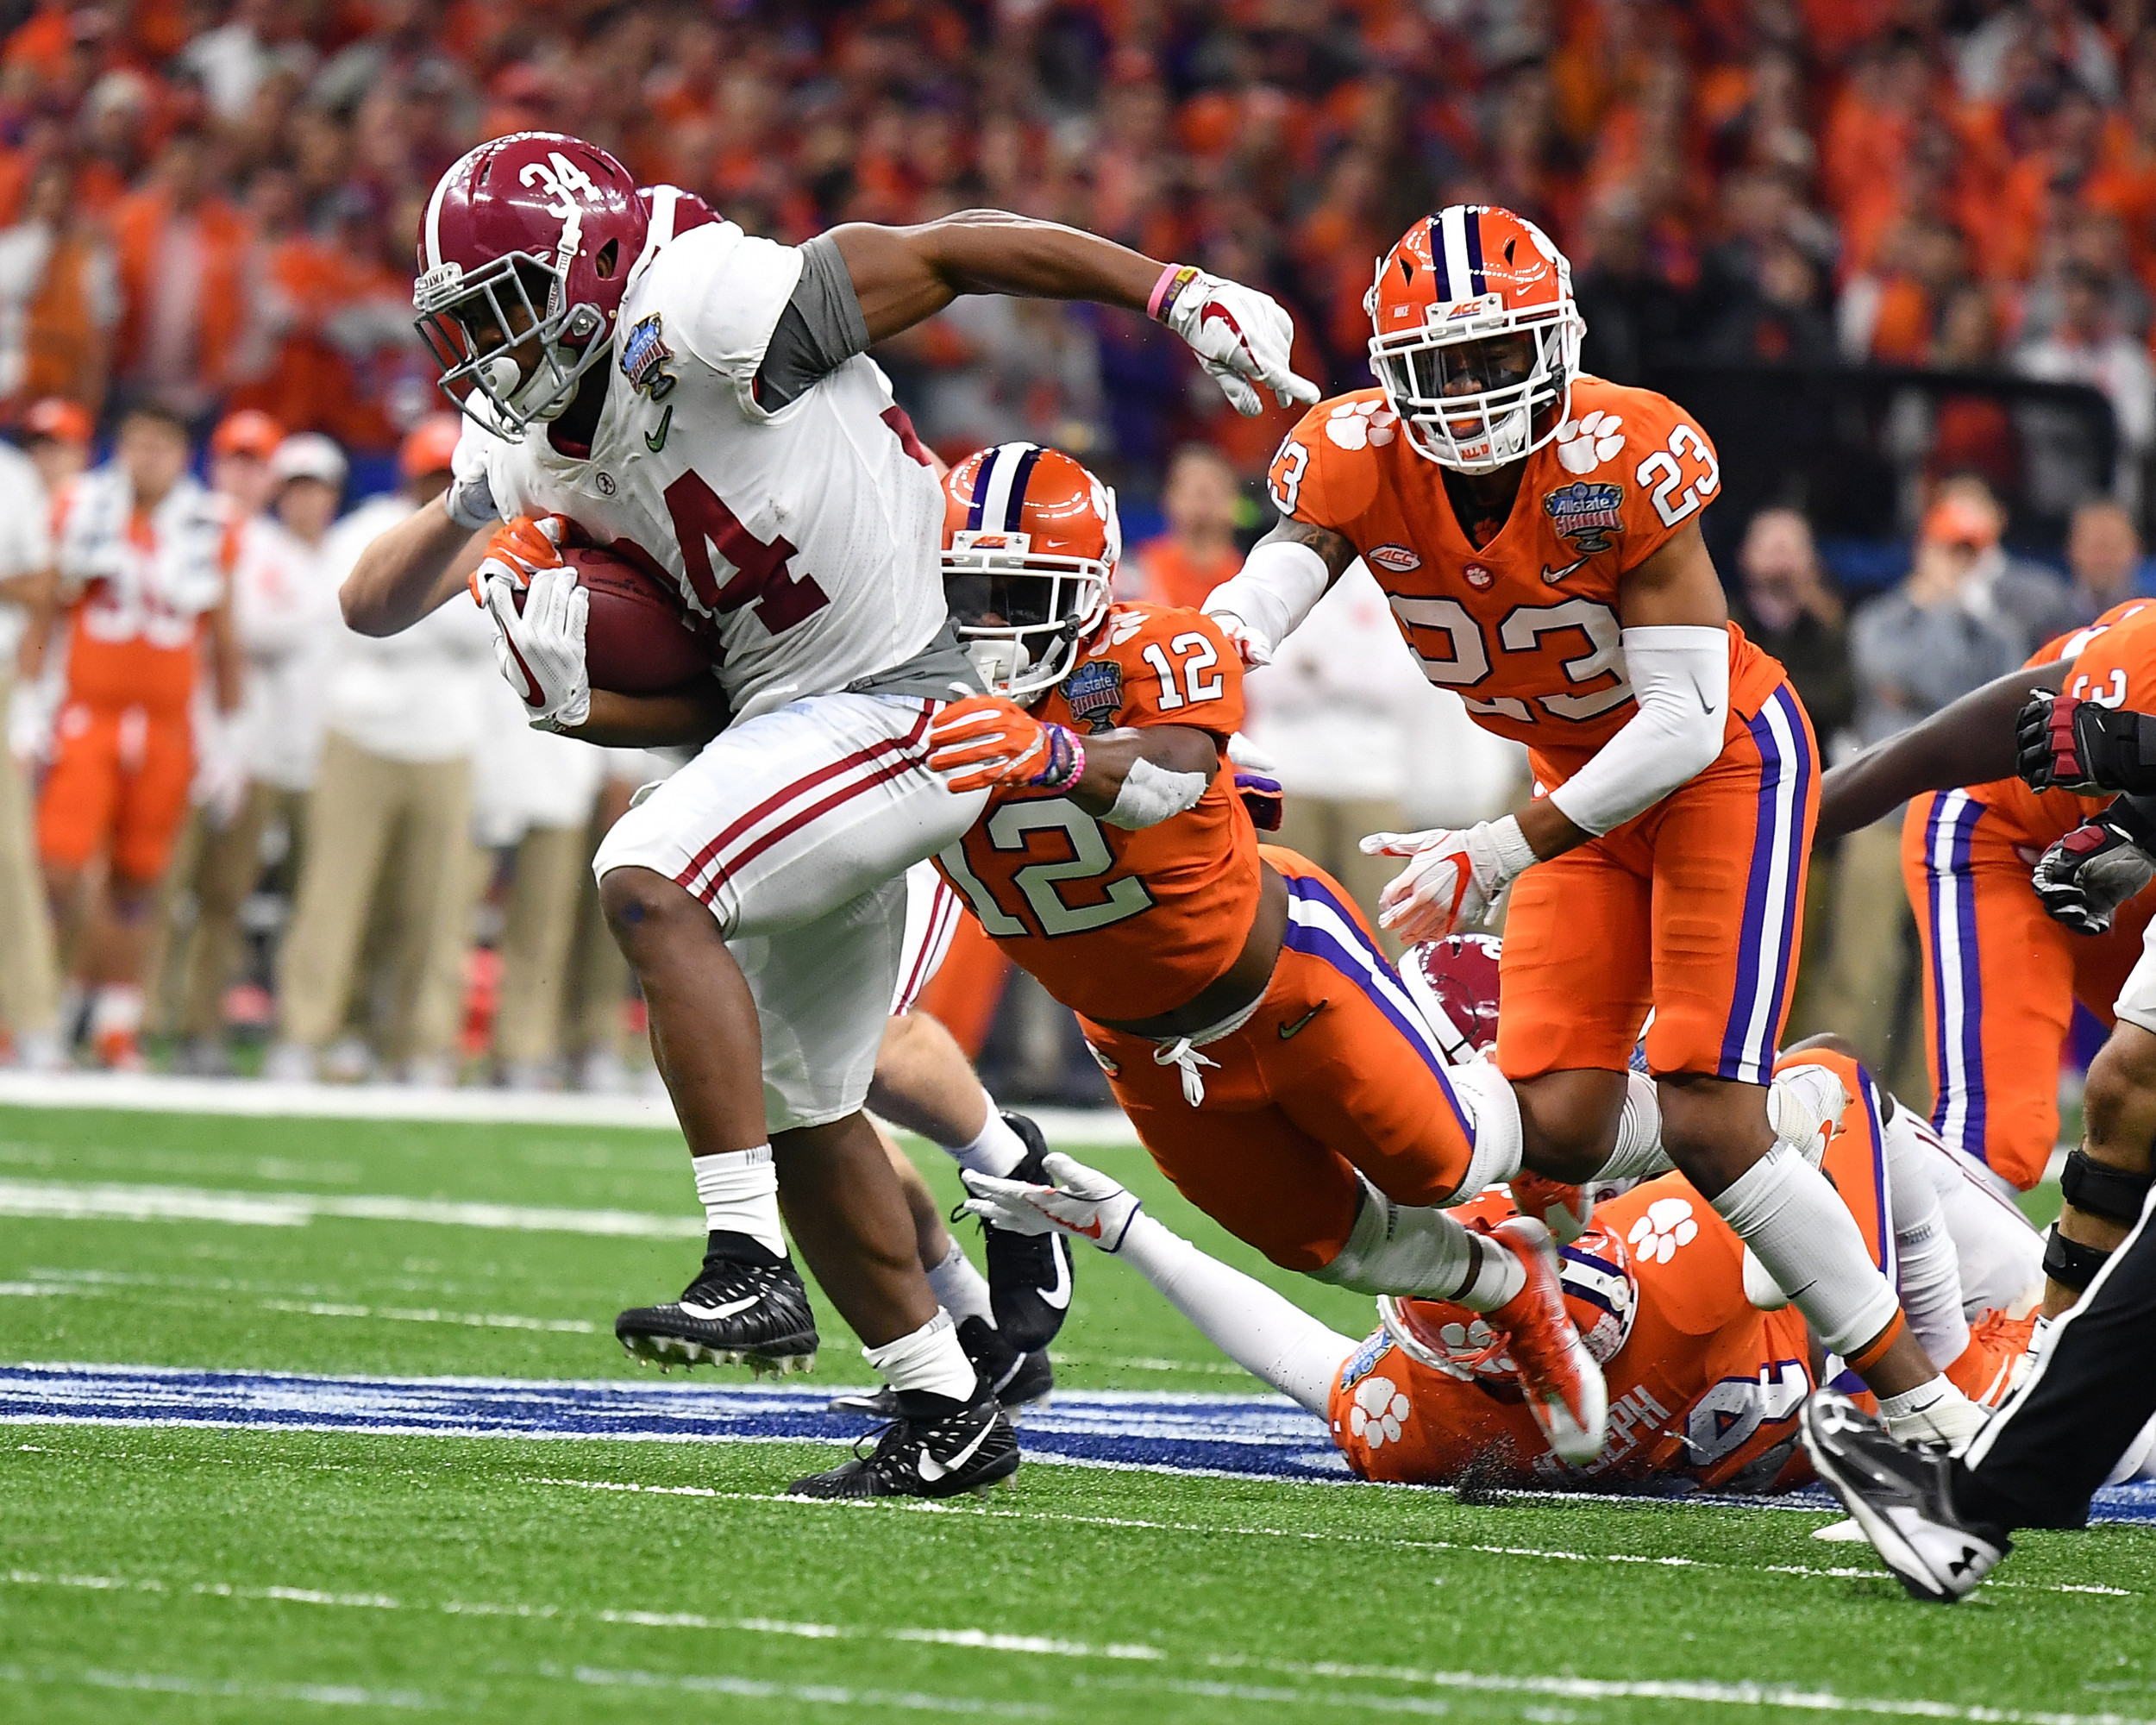 Alabama Crimson Tide running back Damien Harris (34) during the first half of the 2018 AllState Sugar Bowl on Jan. 1, 2018, at the Mercedes-Benz SuperDome in New Orleans, La. Alabama won the game 24-6. (Photo by Lee Walls)